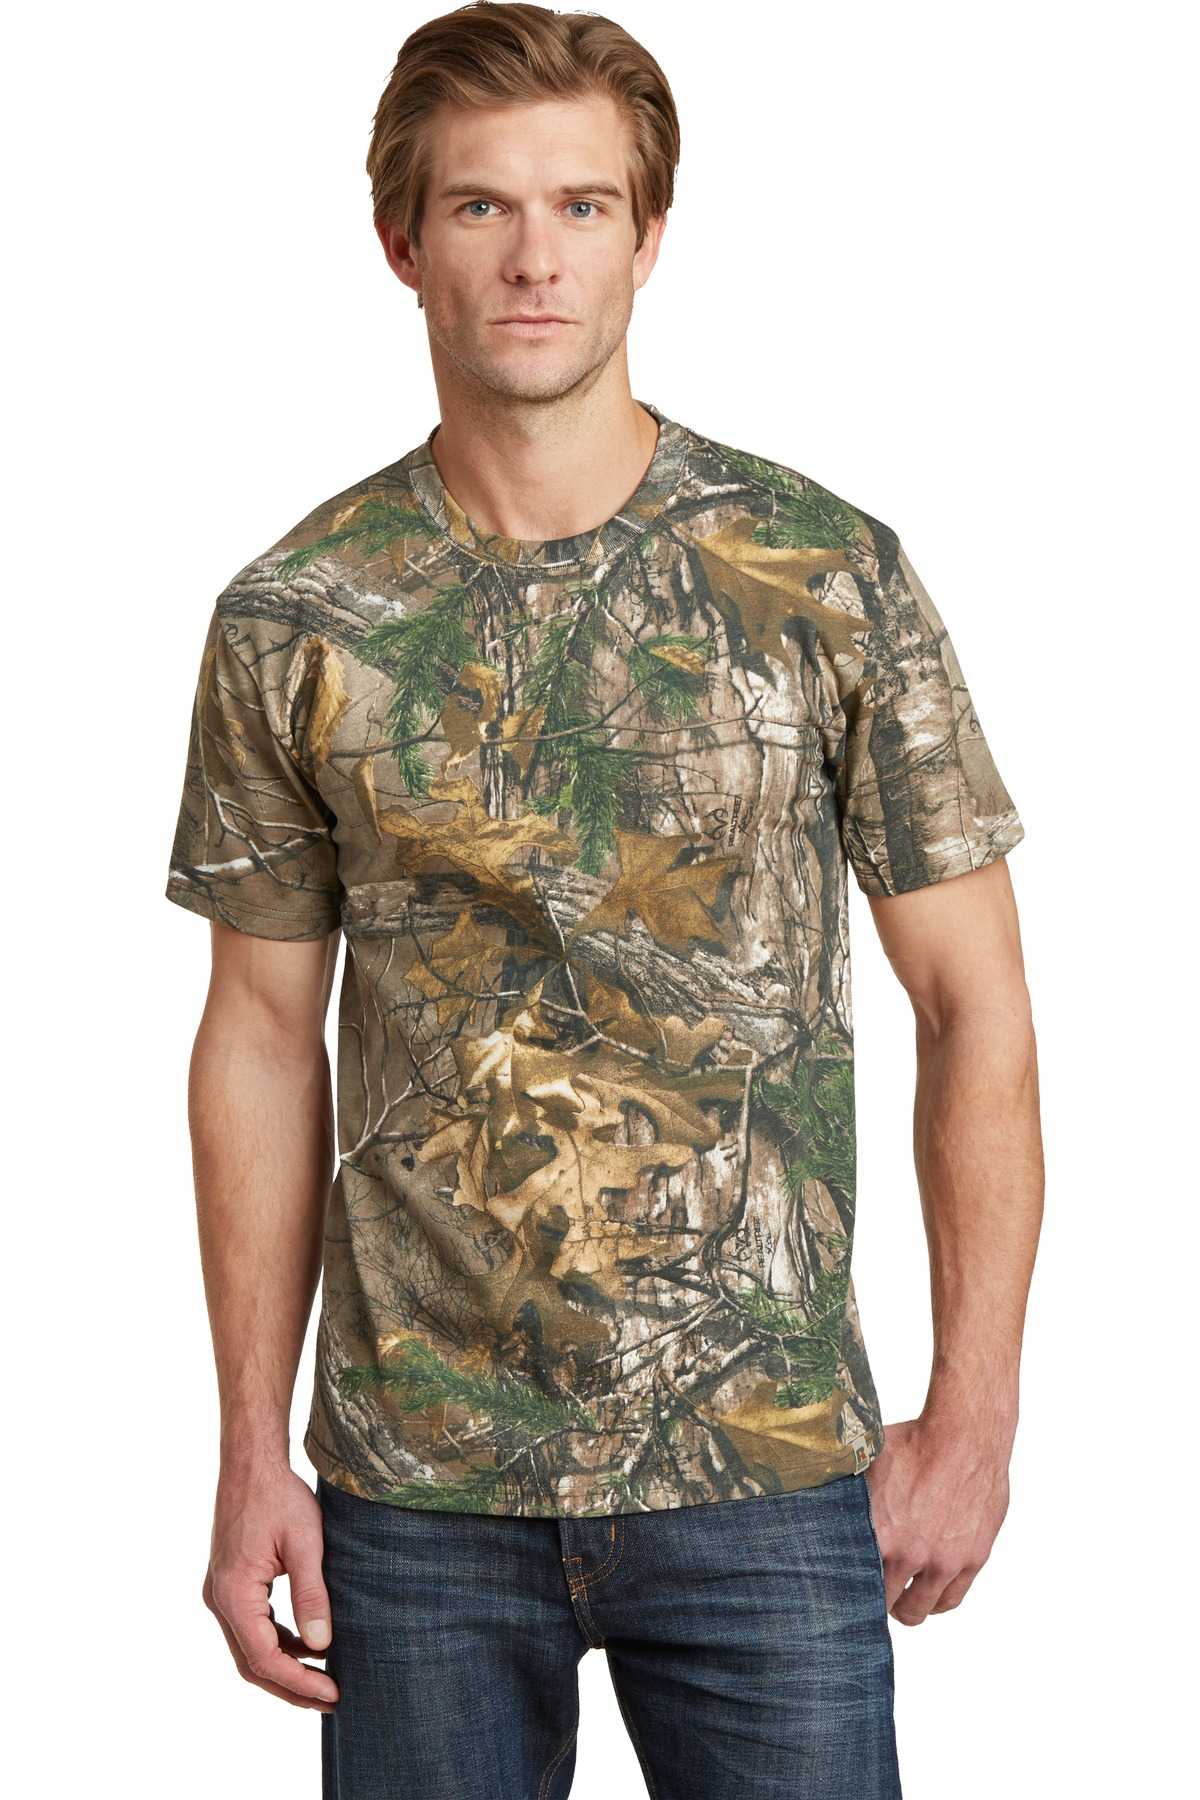 Russell Outdoors ™  - Realtree ®  Explorer 100% Cotton T-Shirt. NP0021R - Realtree Xtra